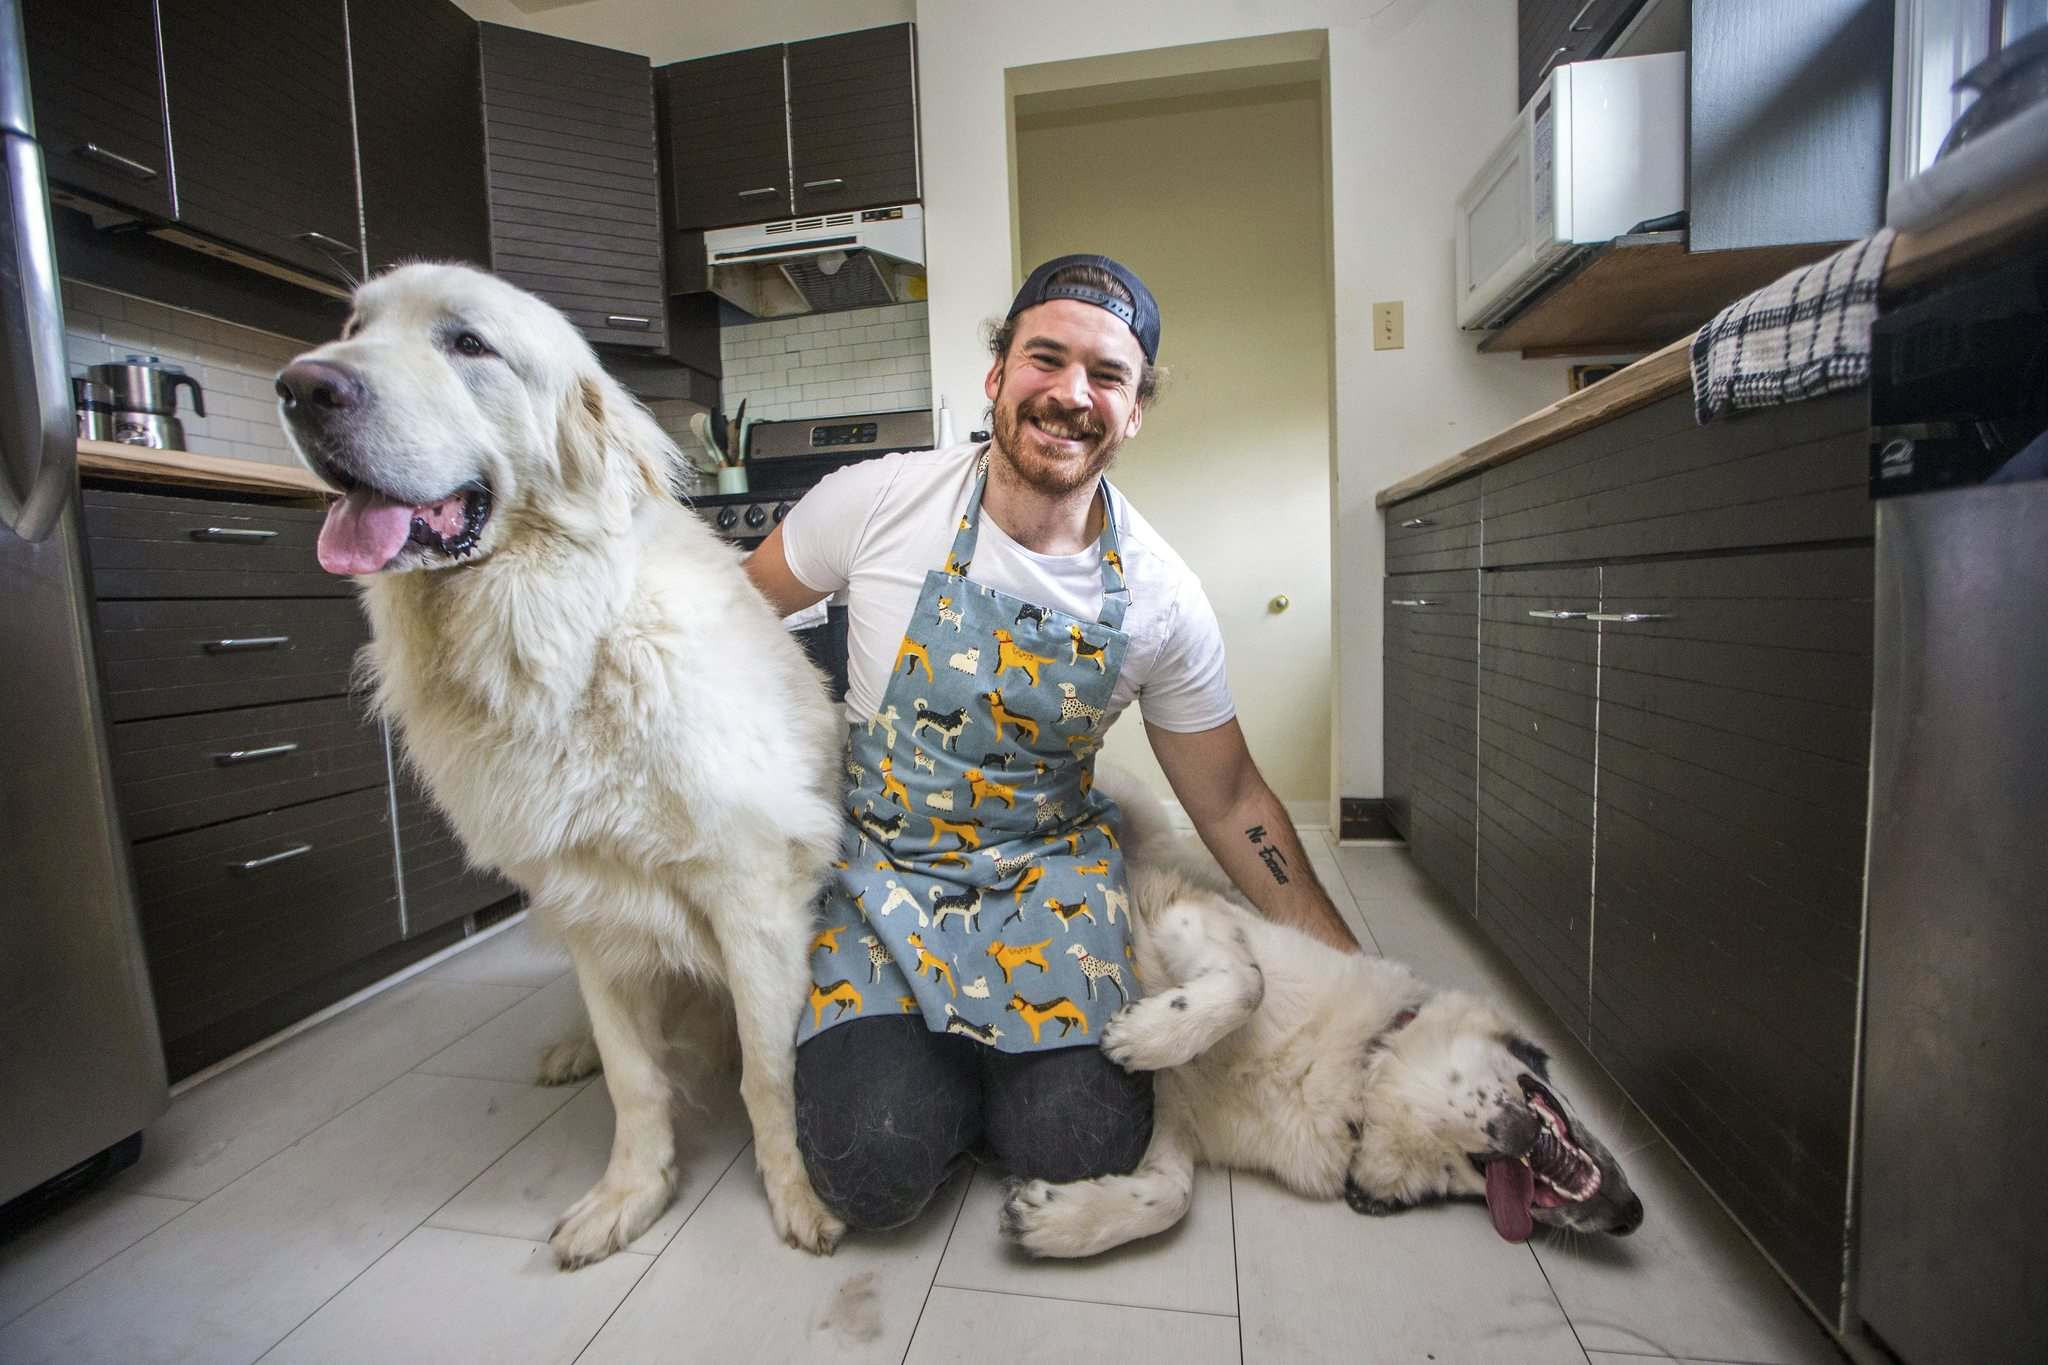 "MIKAELA MACKENZIE / WINNIPEG FREE PRESS</p> <p>Blue Bombers fullback John Rush, with his dogs Bone (left) and Bailey, turned a month-long experiment with veganism into a lifestyle.</p> <p>""></a><figcaption readability="